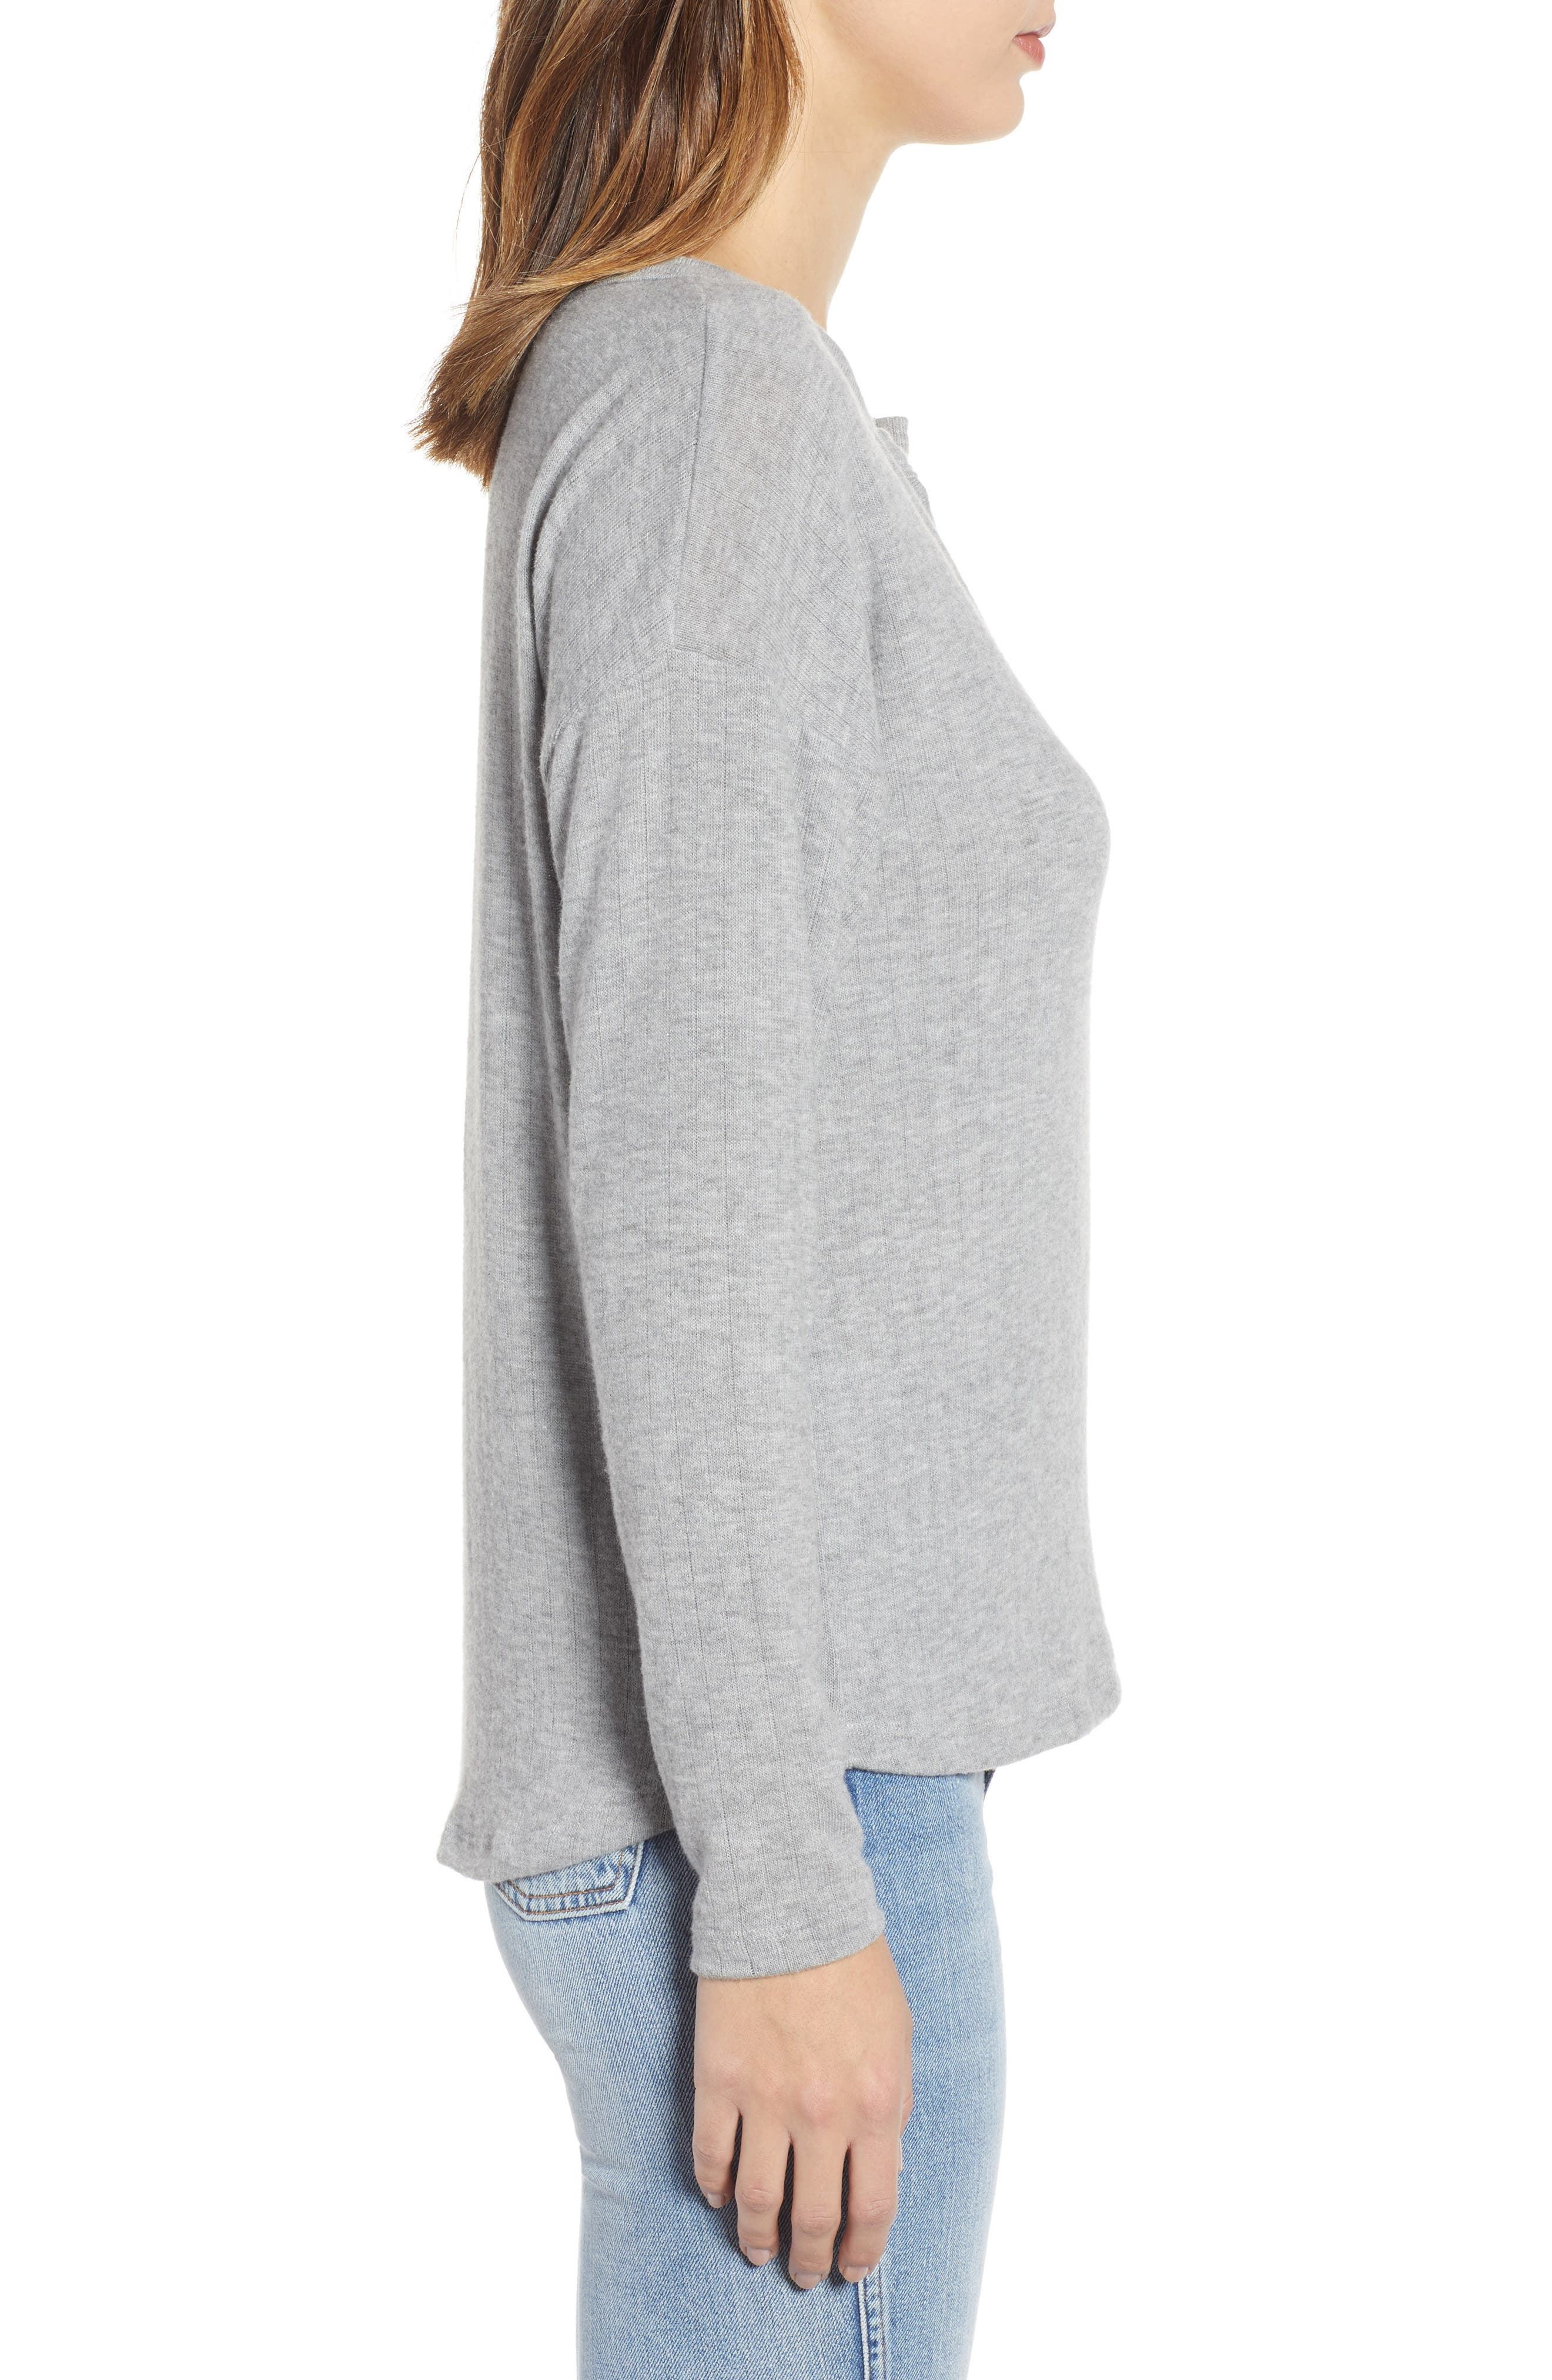 PST BY PROJECT SOCIAL T,                             e Cozy Tee,                             Alternate thumbnail 3, color,                             GREY